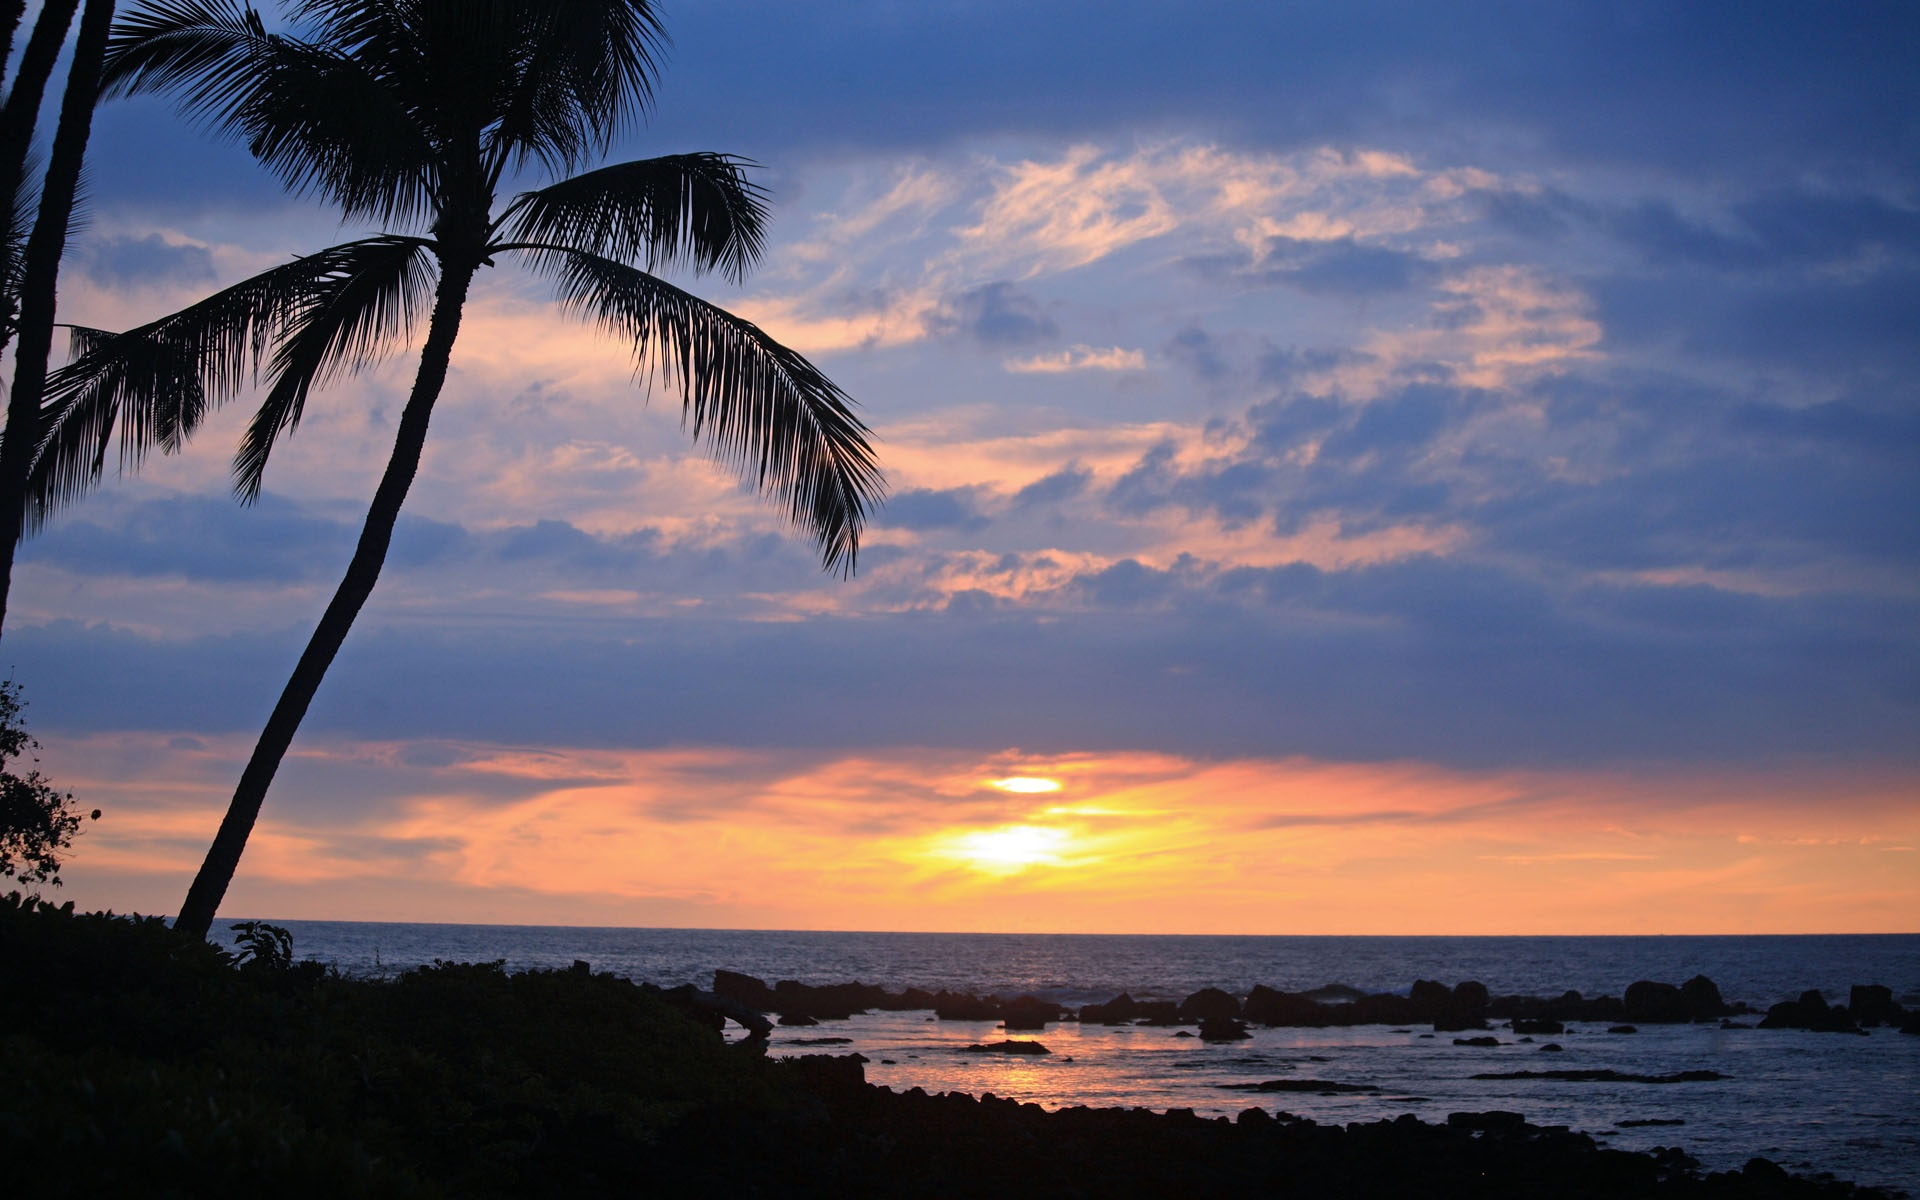 Tropical sunset near Keauhou Beach 1920x1200 wallpaper download page 1920x1200